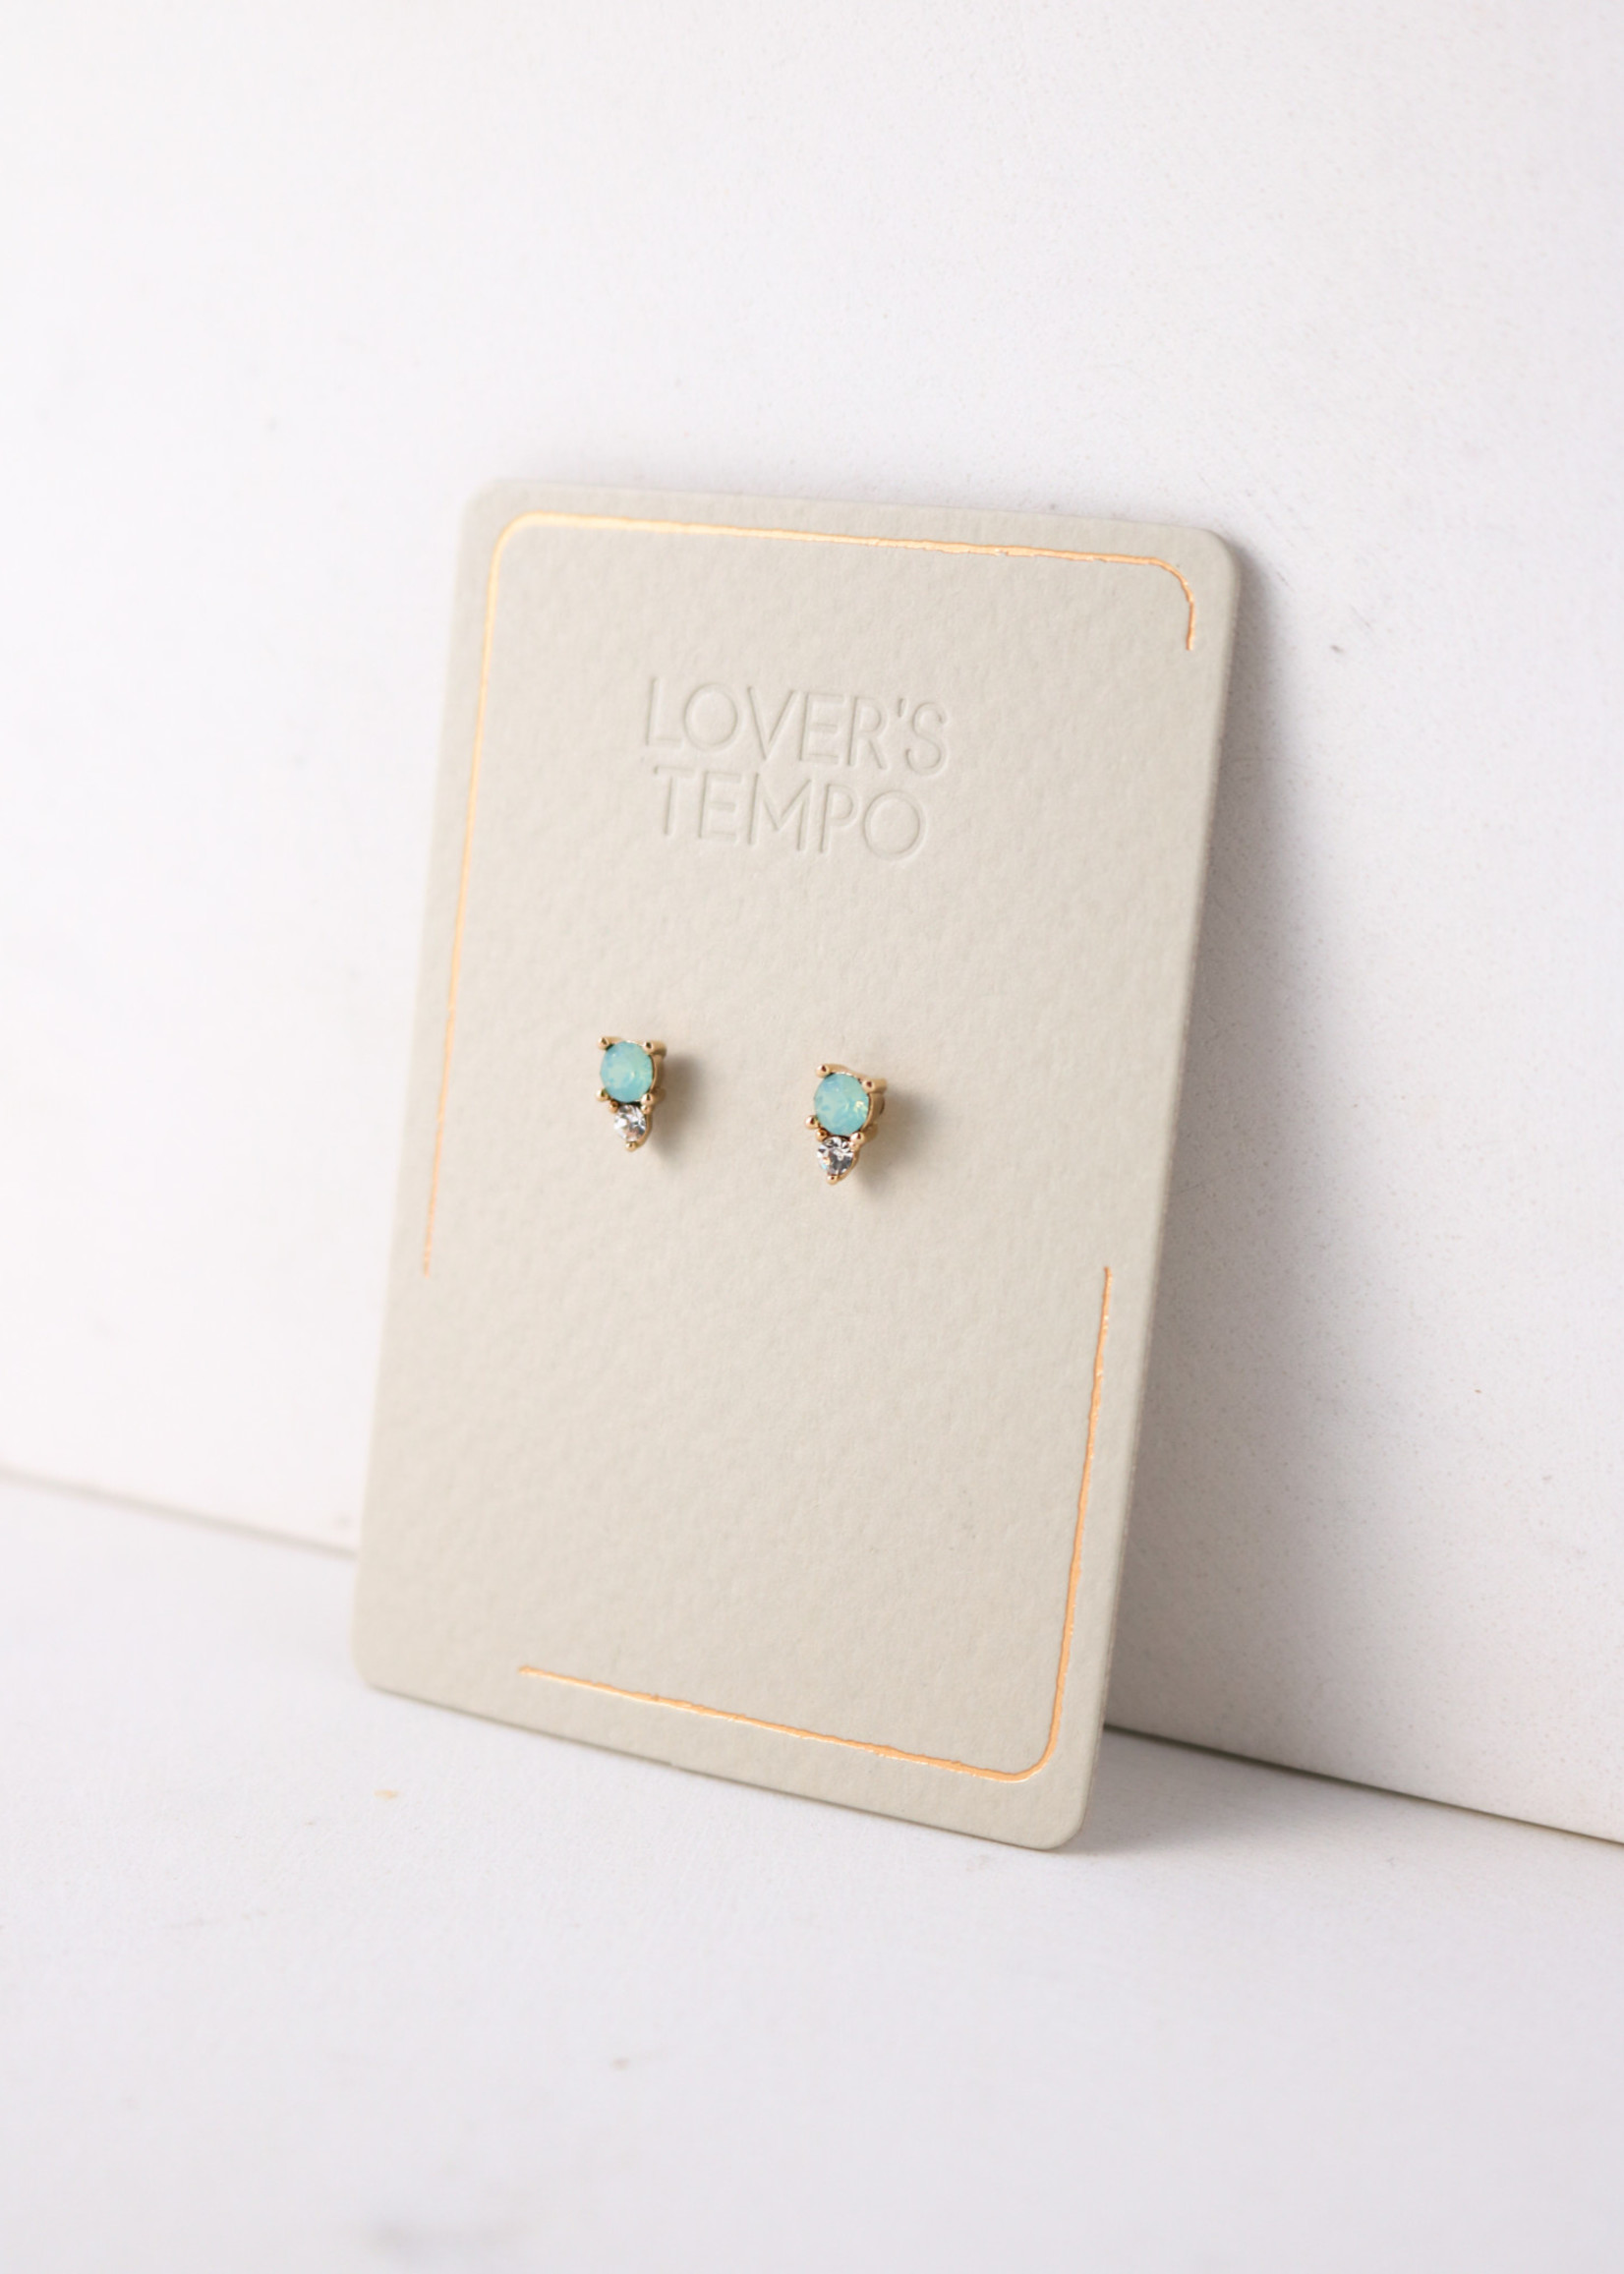 Lovers Tempo-Dolce Stud Earrings